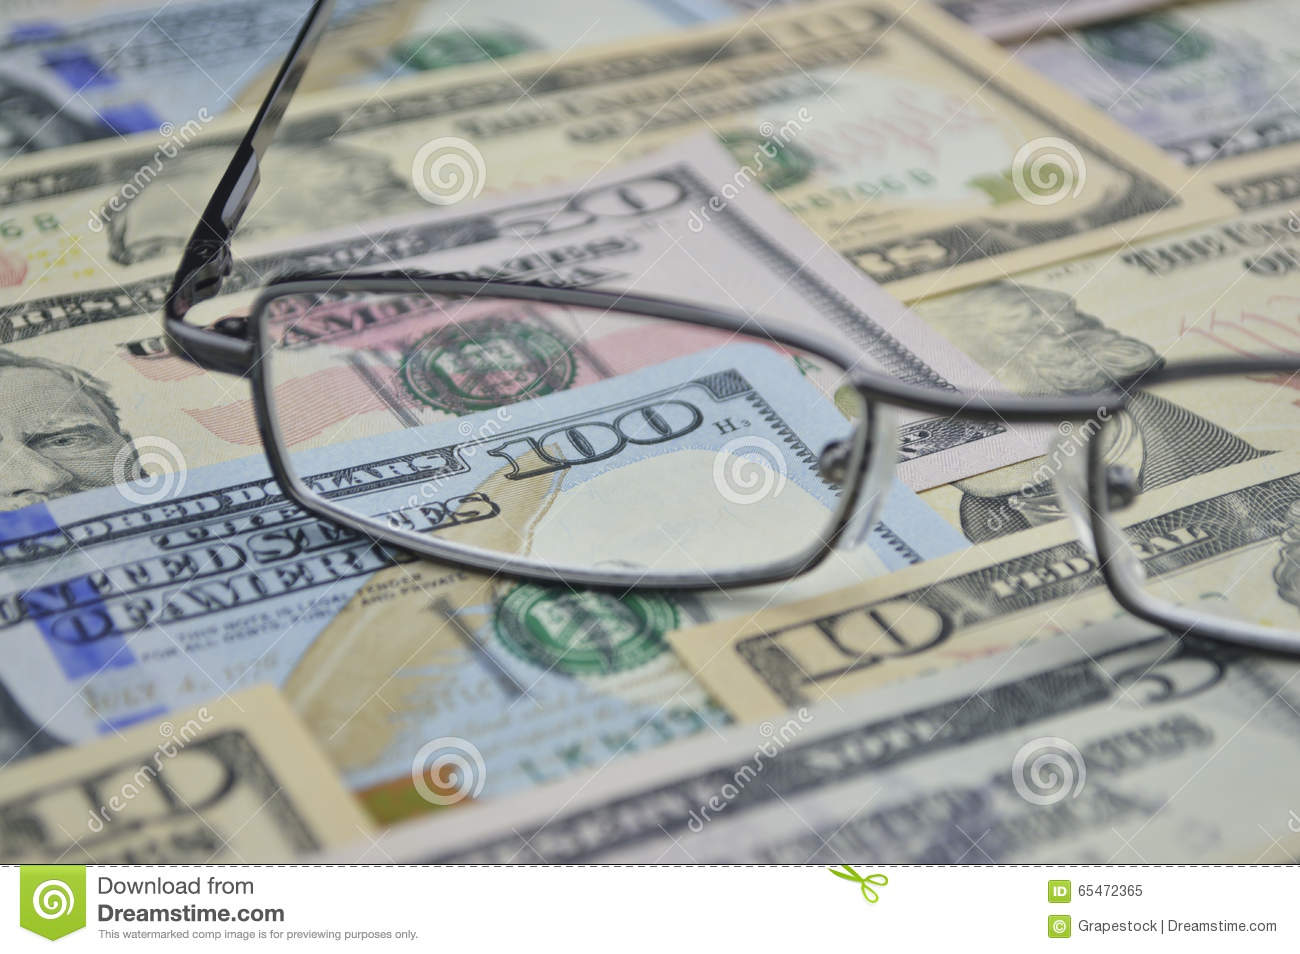 Glasses and dollar bank note money; financial background